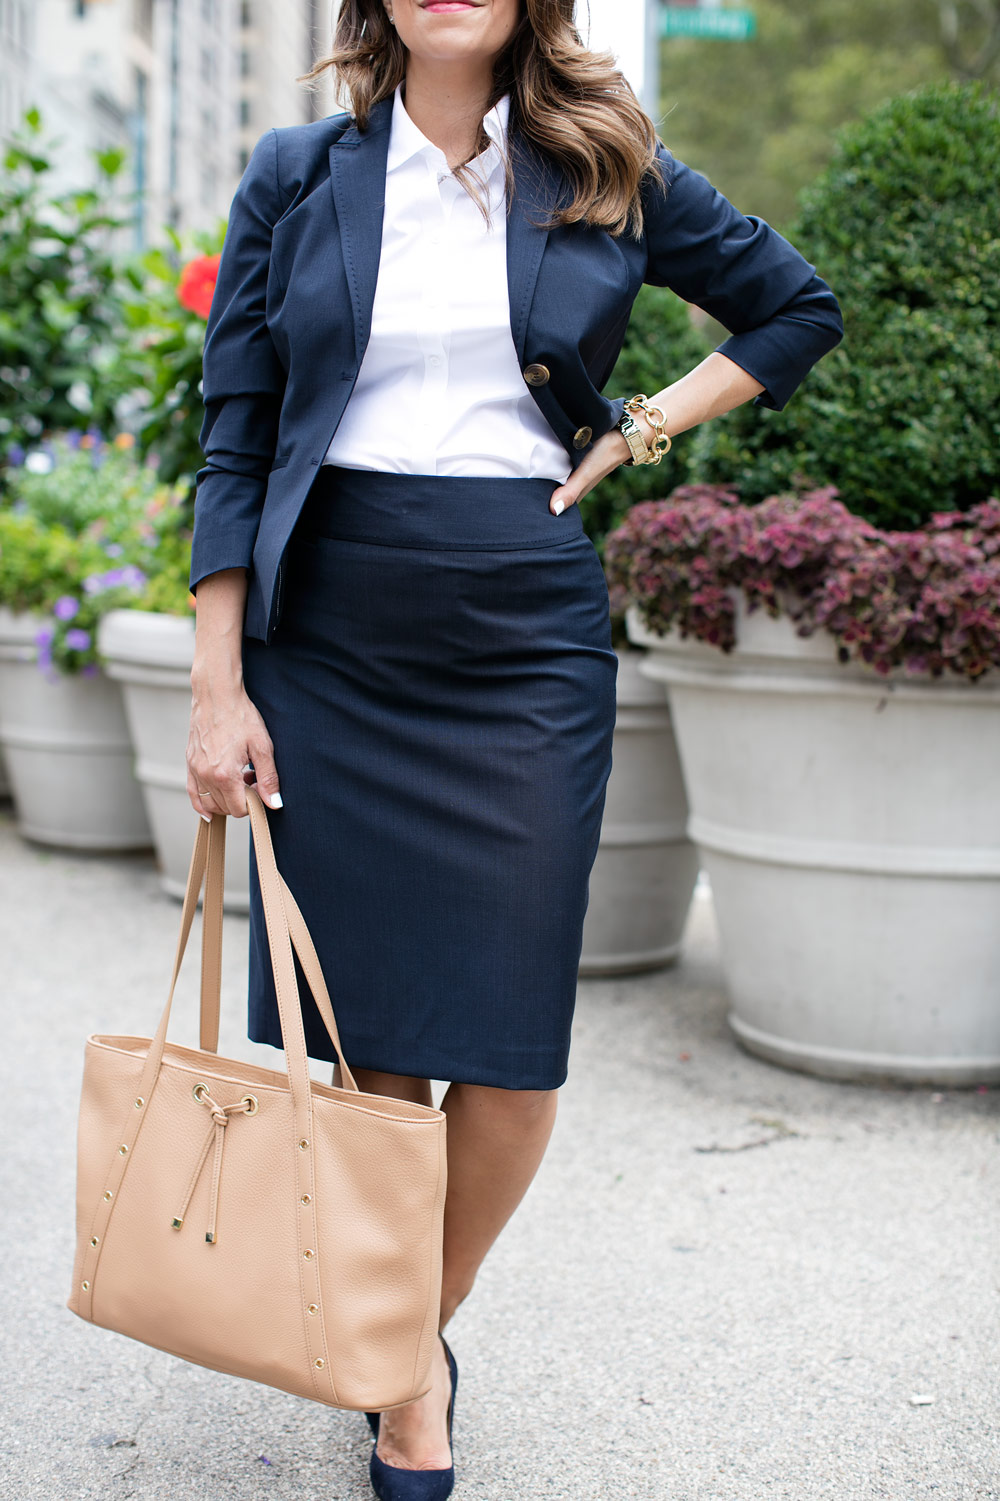 talbots-womens-suit-what-to-wear-to-work-blazer-new-york-city-nyc-corporate-catwalk-fashion-blog-7